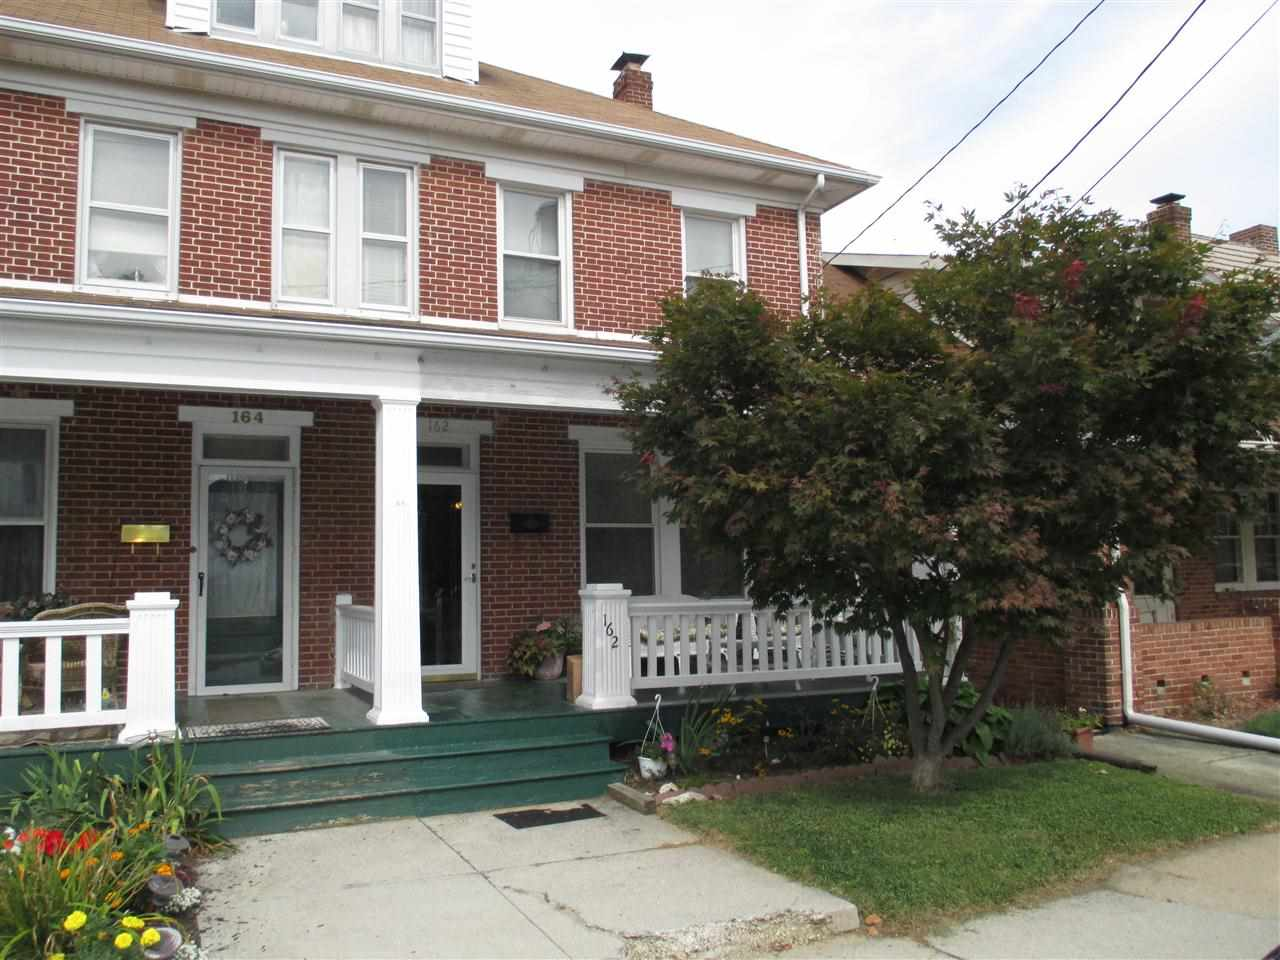 162 Linden Ave, Red Lion, PA 17356